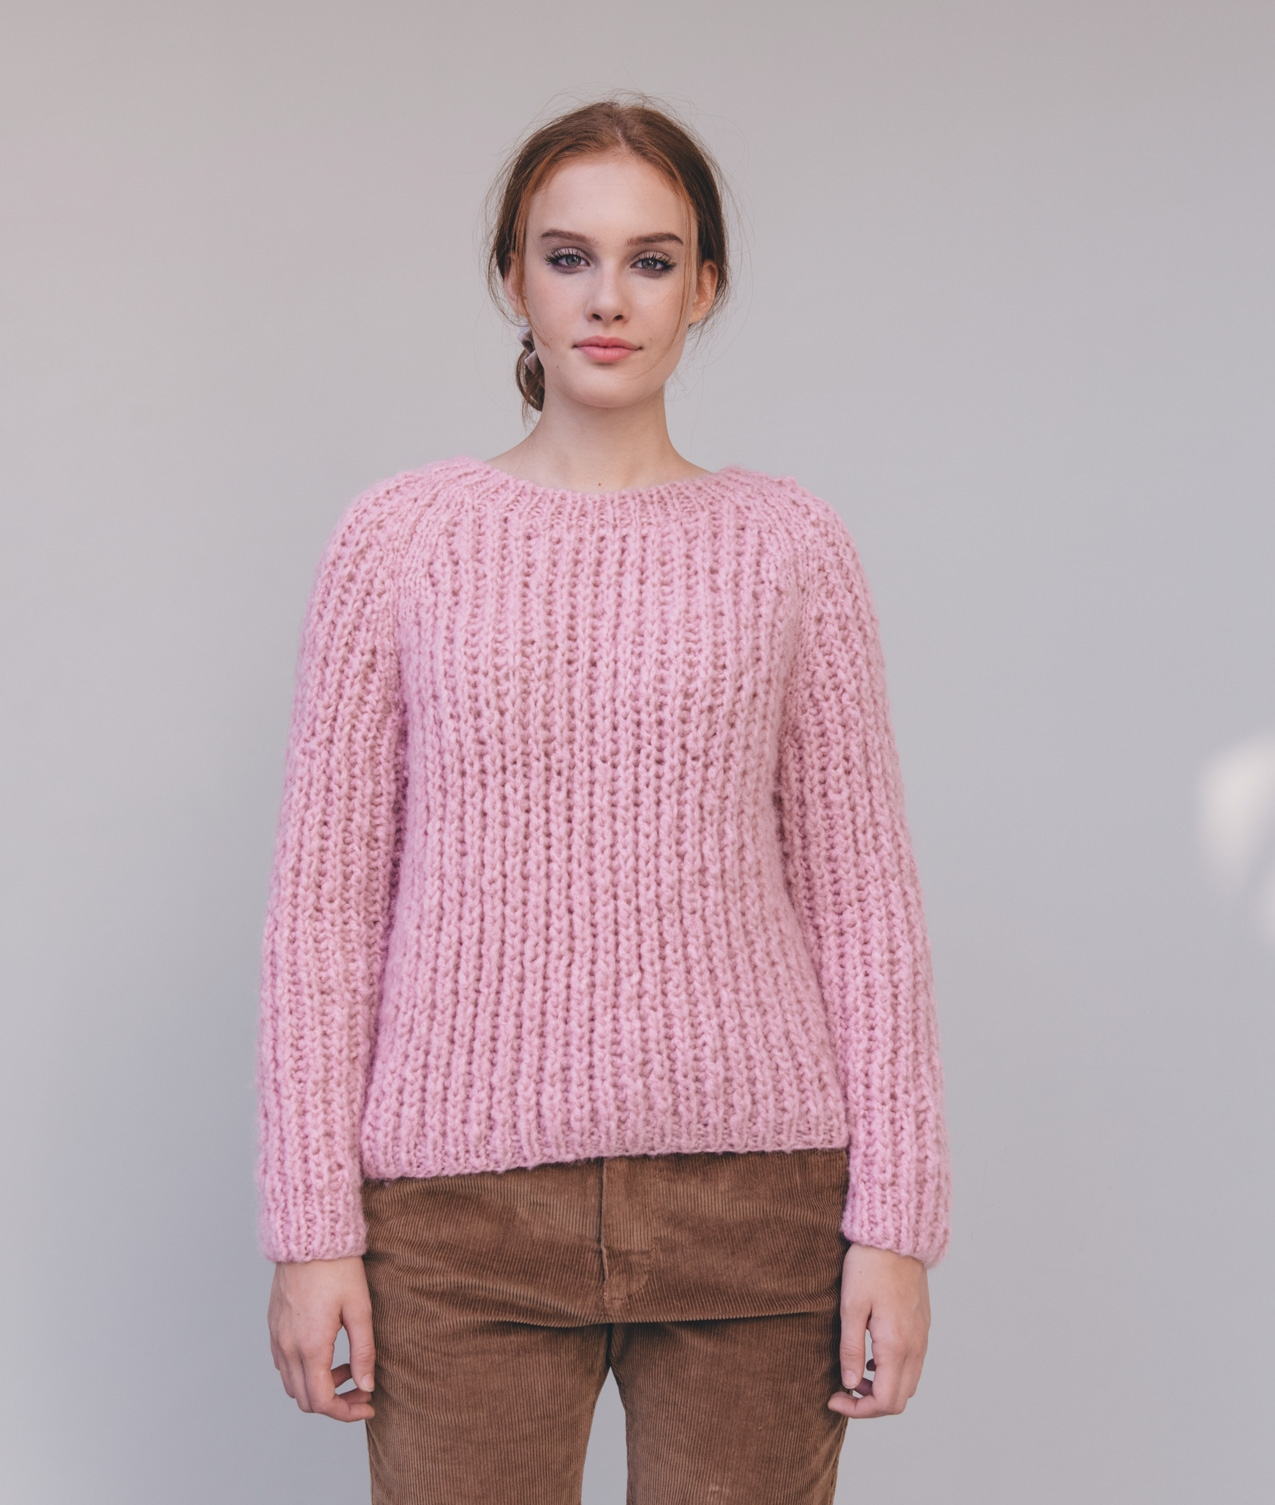 Fall / Winter 2018-19 Collection - CollectionsFall / Winter 2018-19 Collection - Collections - MARSHMALLOW SWEATER - 1